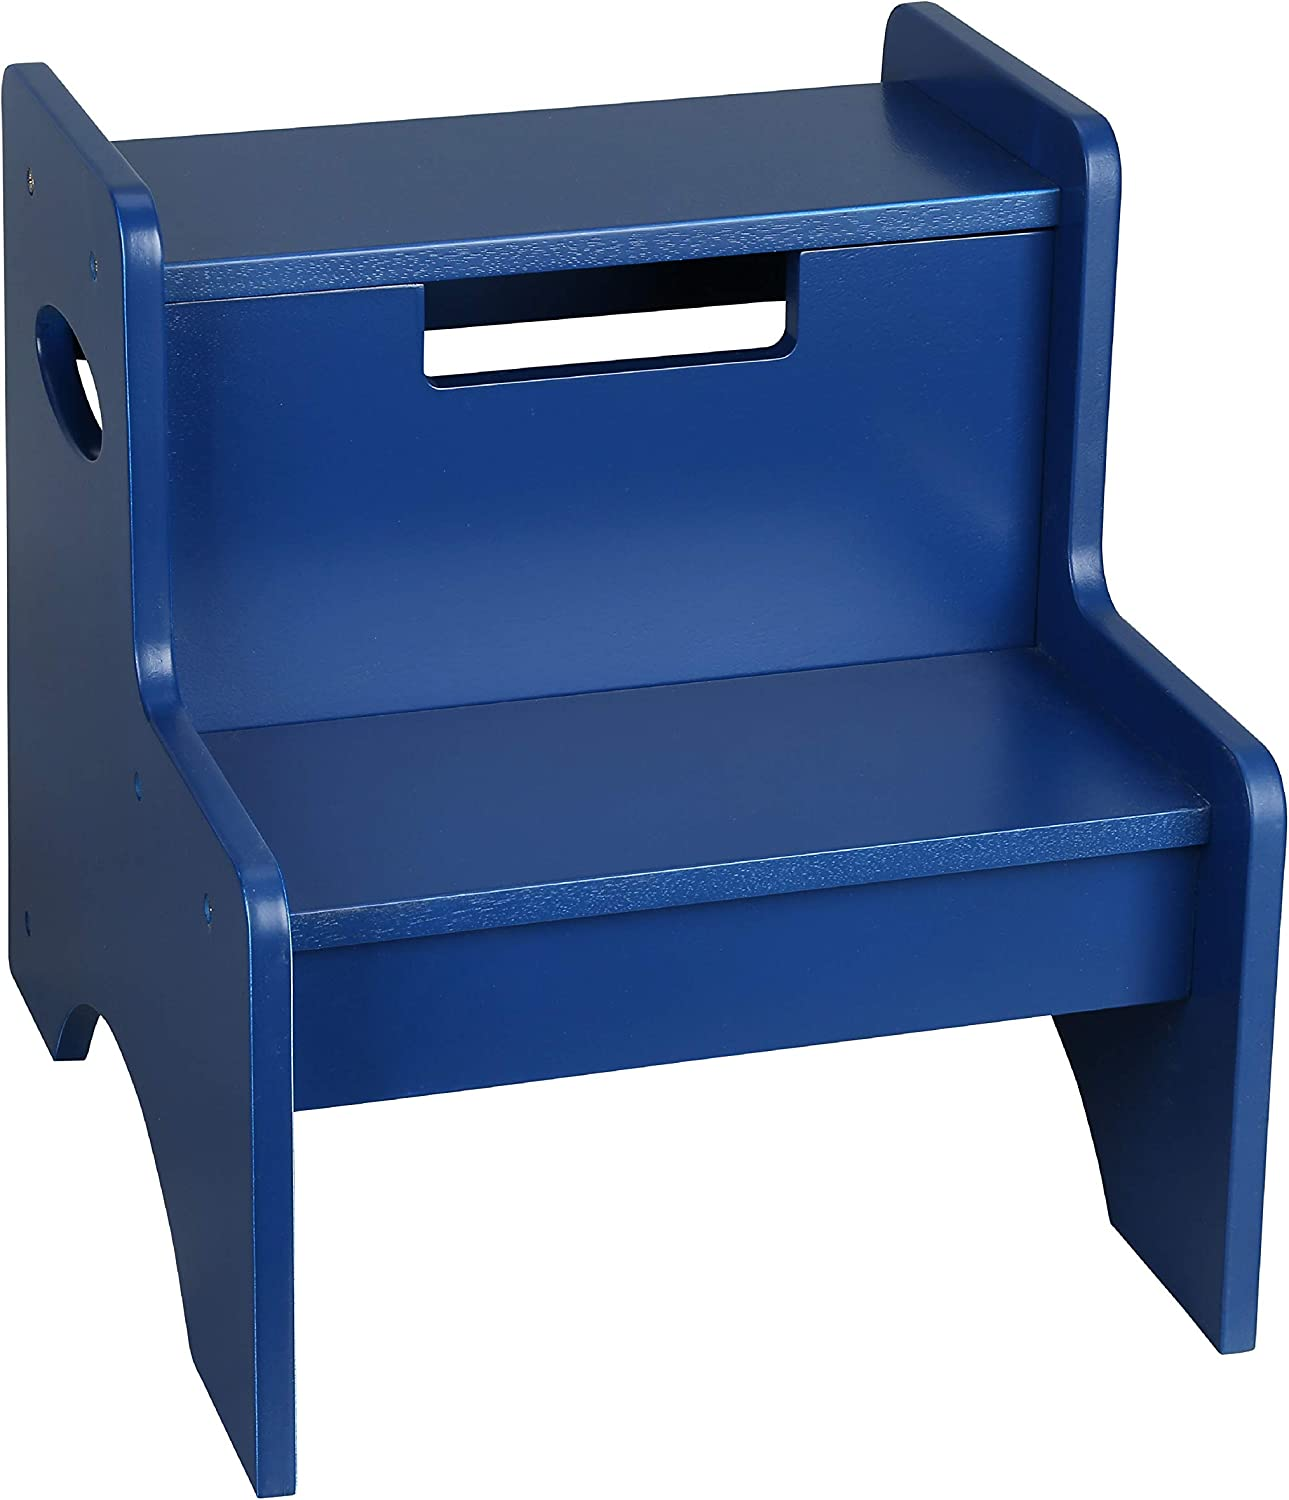 Wildkin Kids Wooden Two-Step Stool for Kids and Adults, Perfect for Kitchen or Bathroom Use, Stepping Stool Features Two Convenient Carrying Handles, Suitable for Individuals Up to 200lbs (Navy Blue)